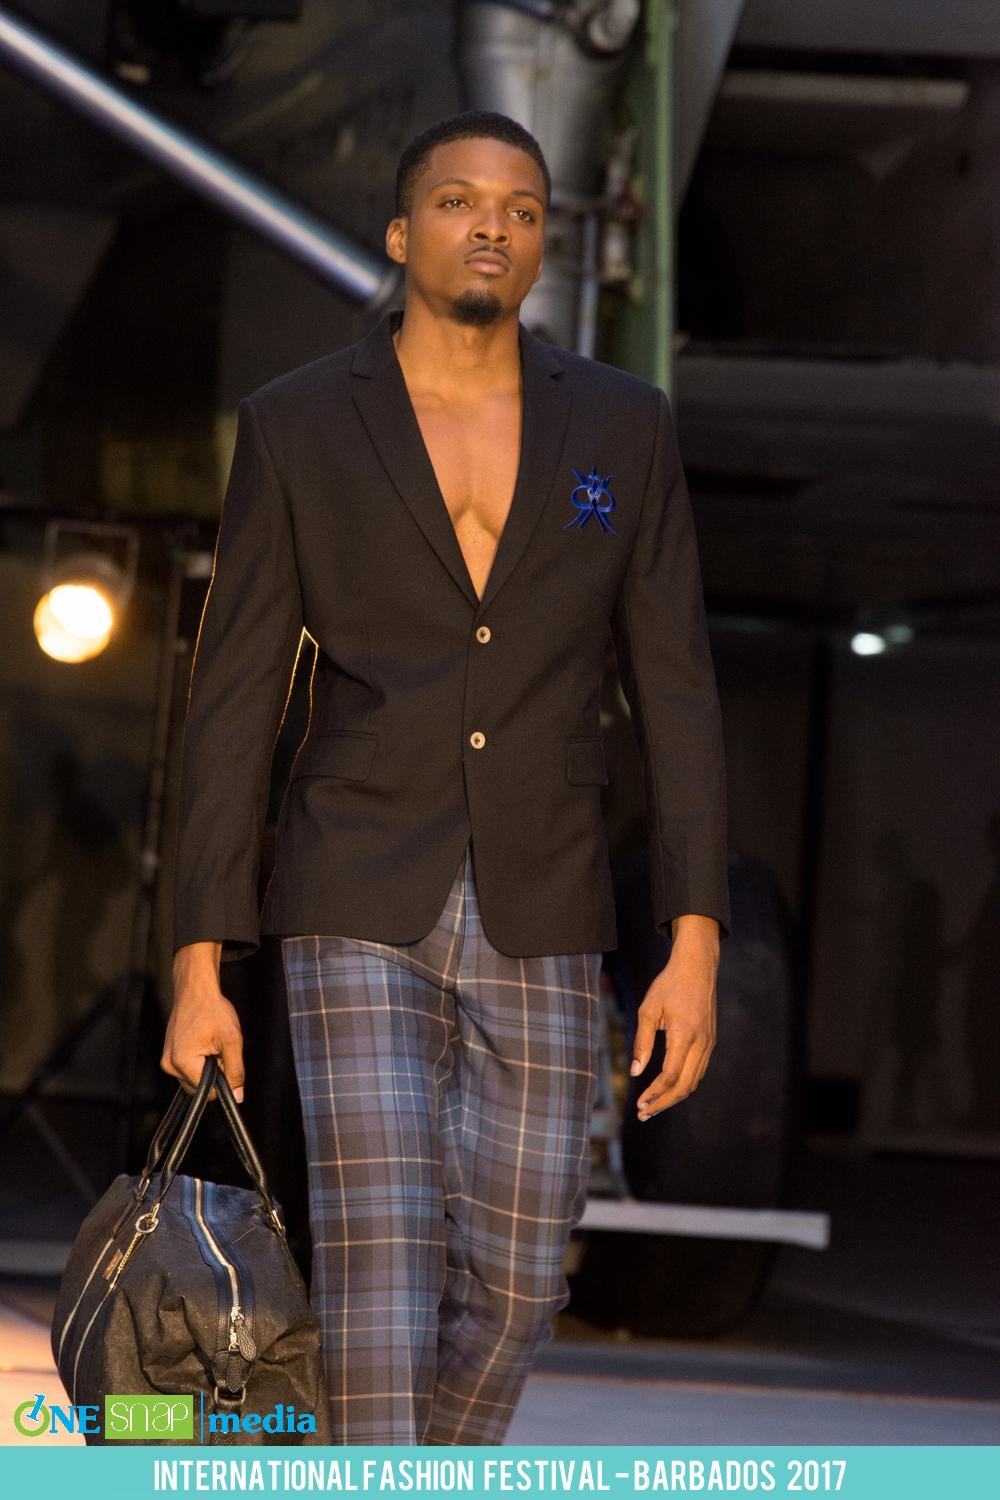 Barbados_fashion show13.jpg